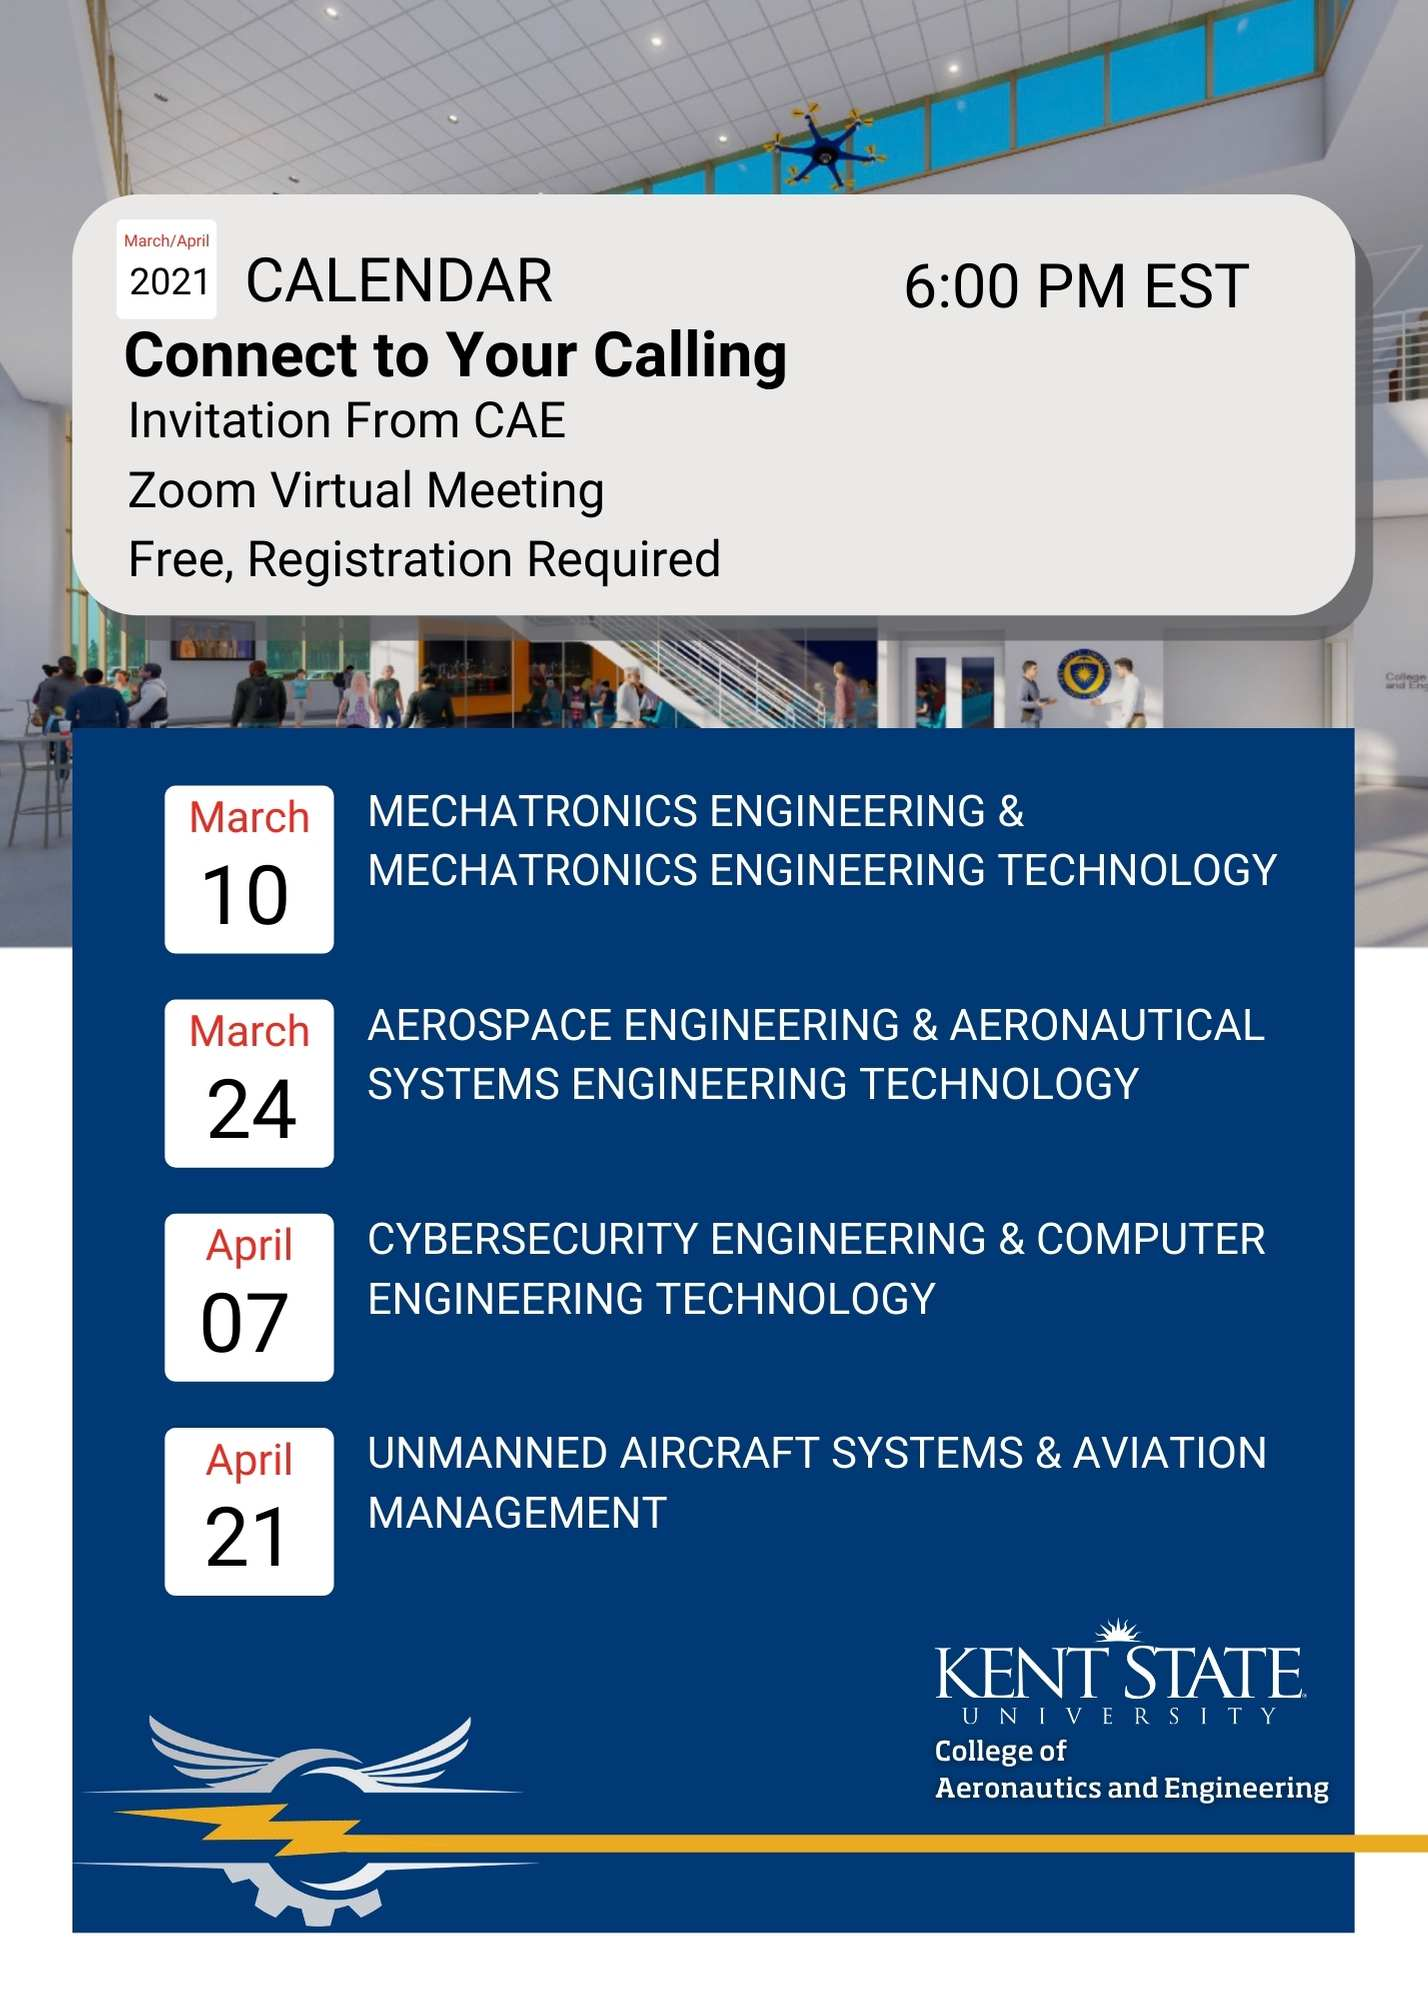 Connect to Your Calling Event Flyer